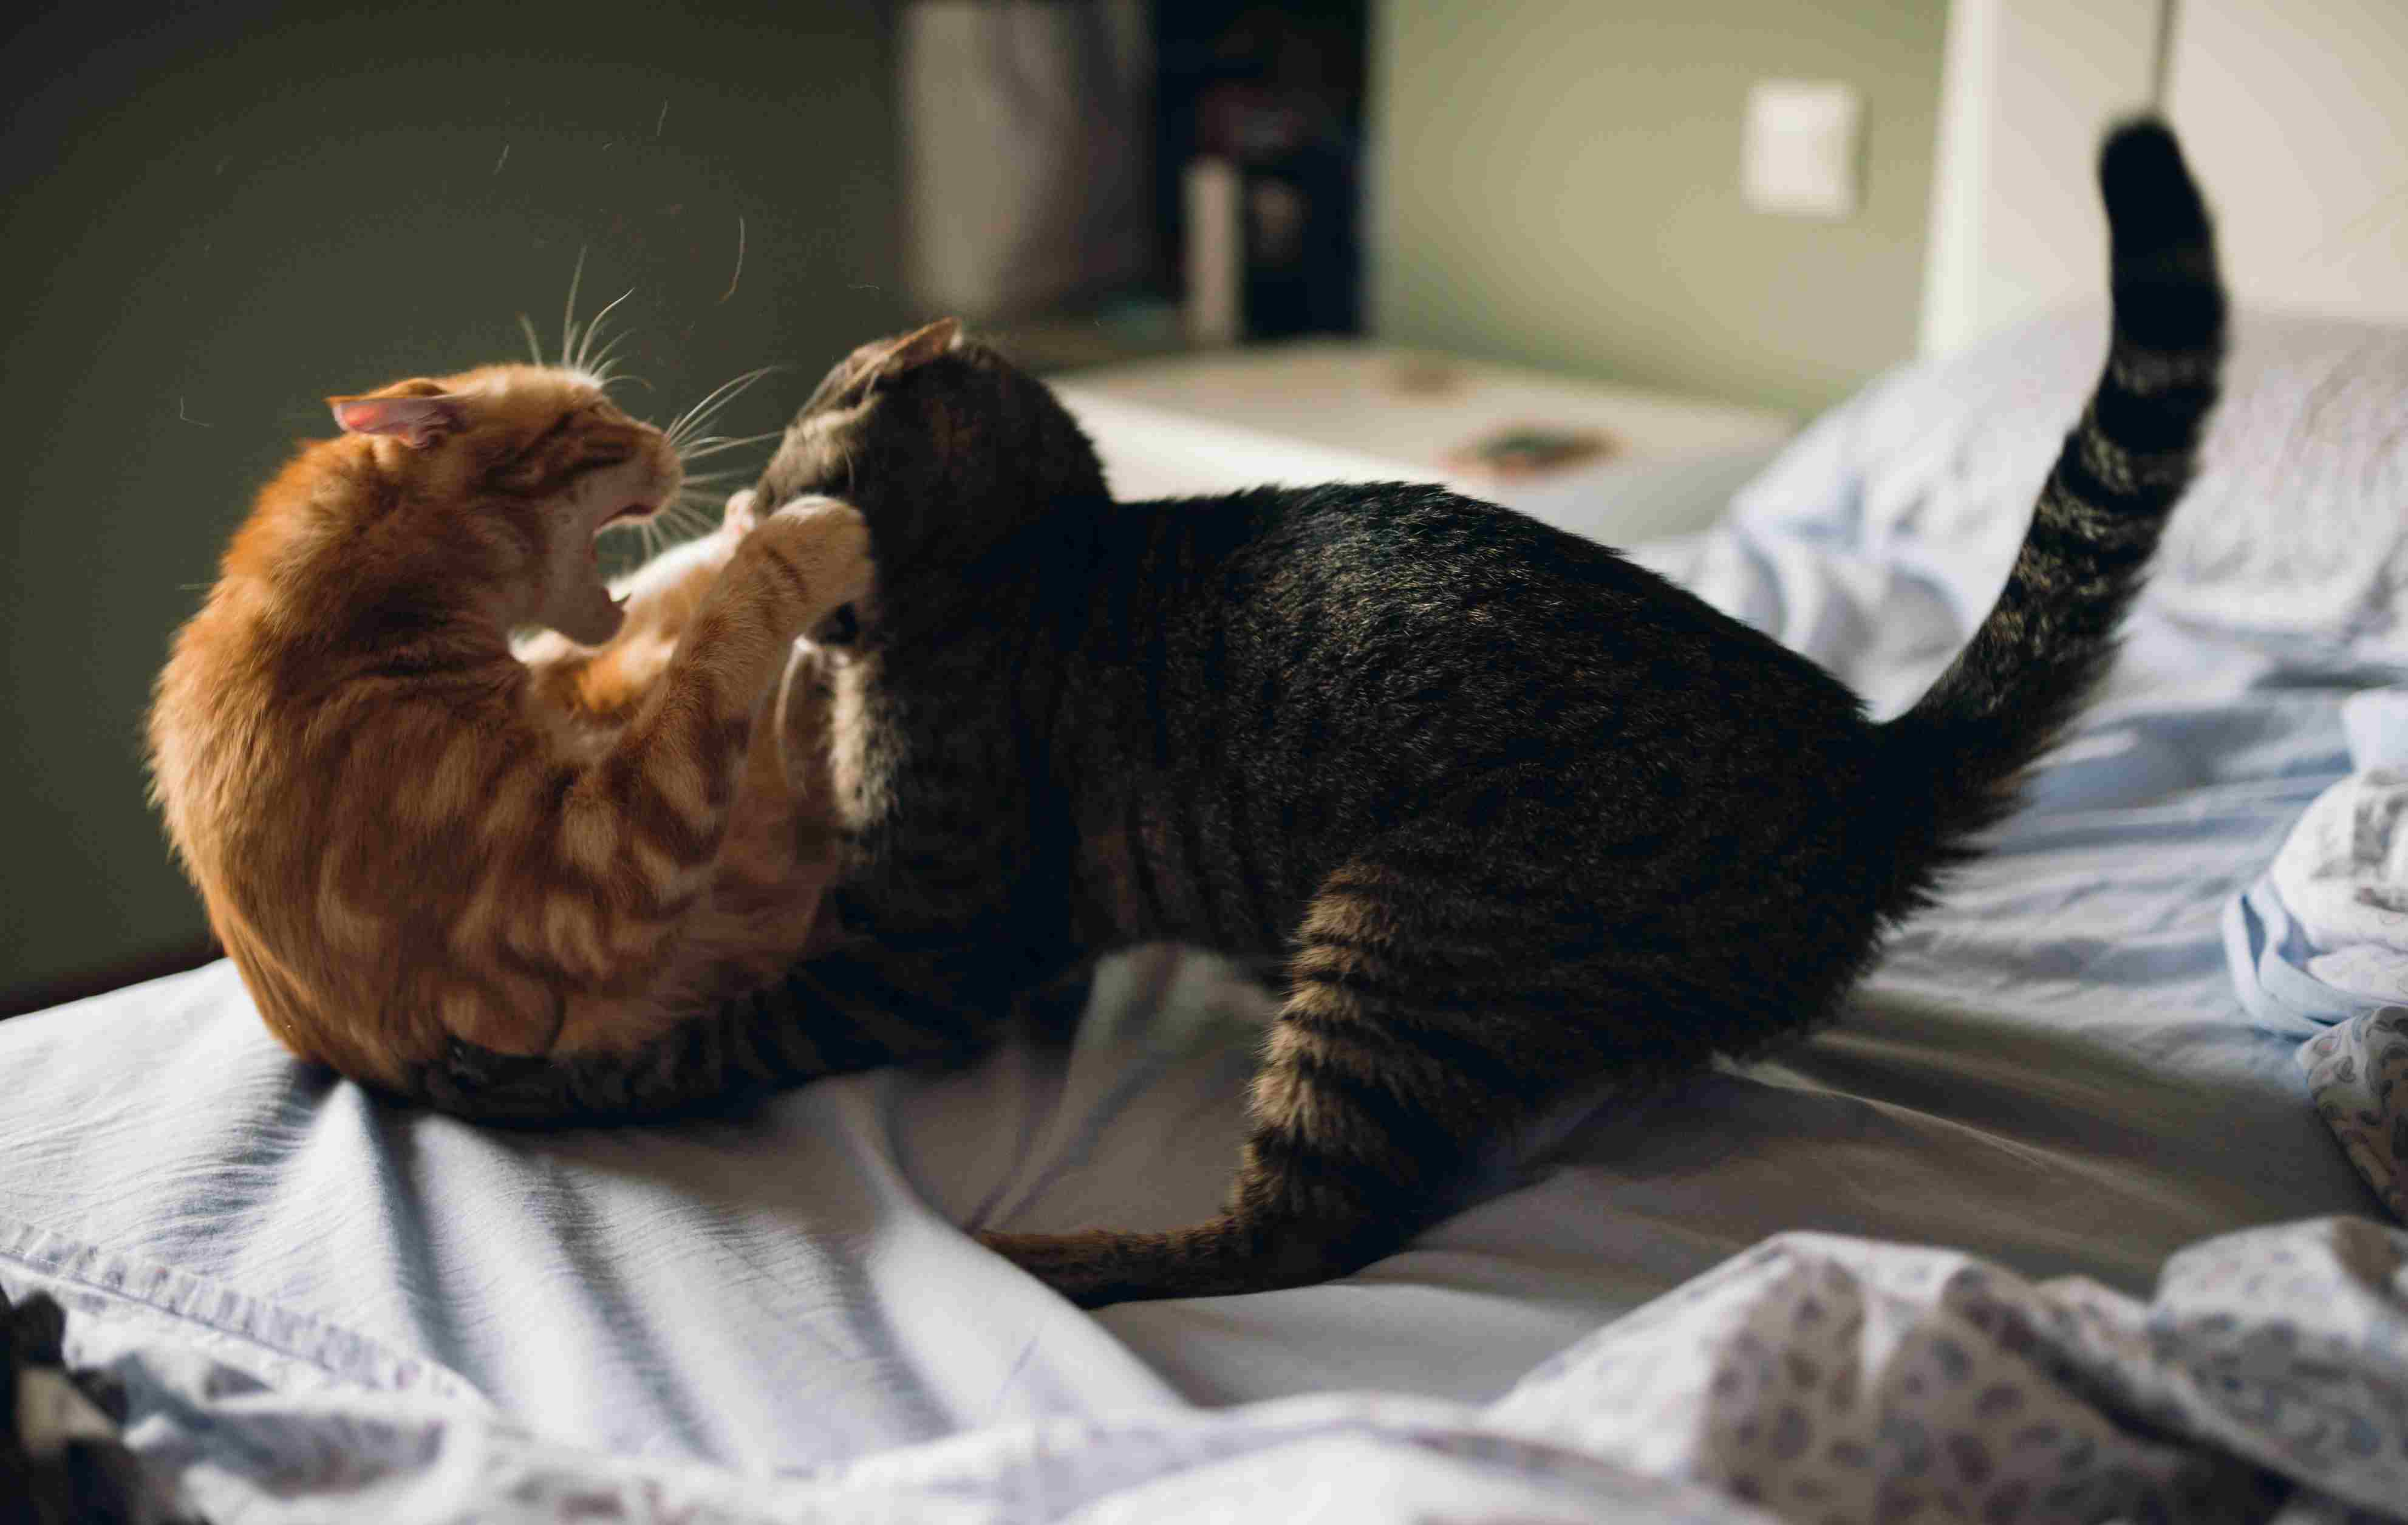 Two cats playing har on a bed